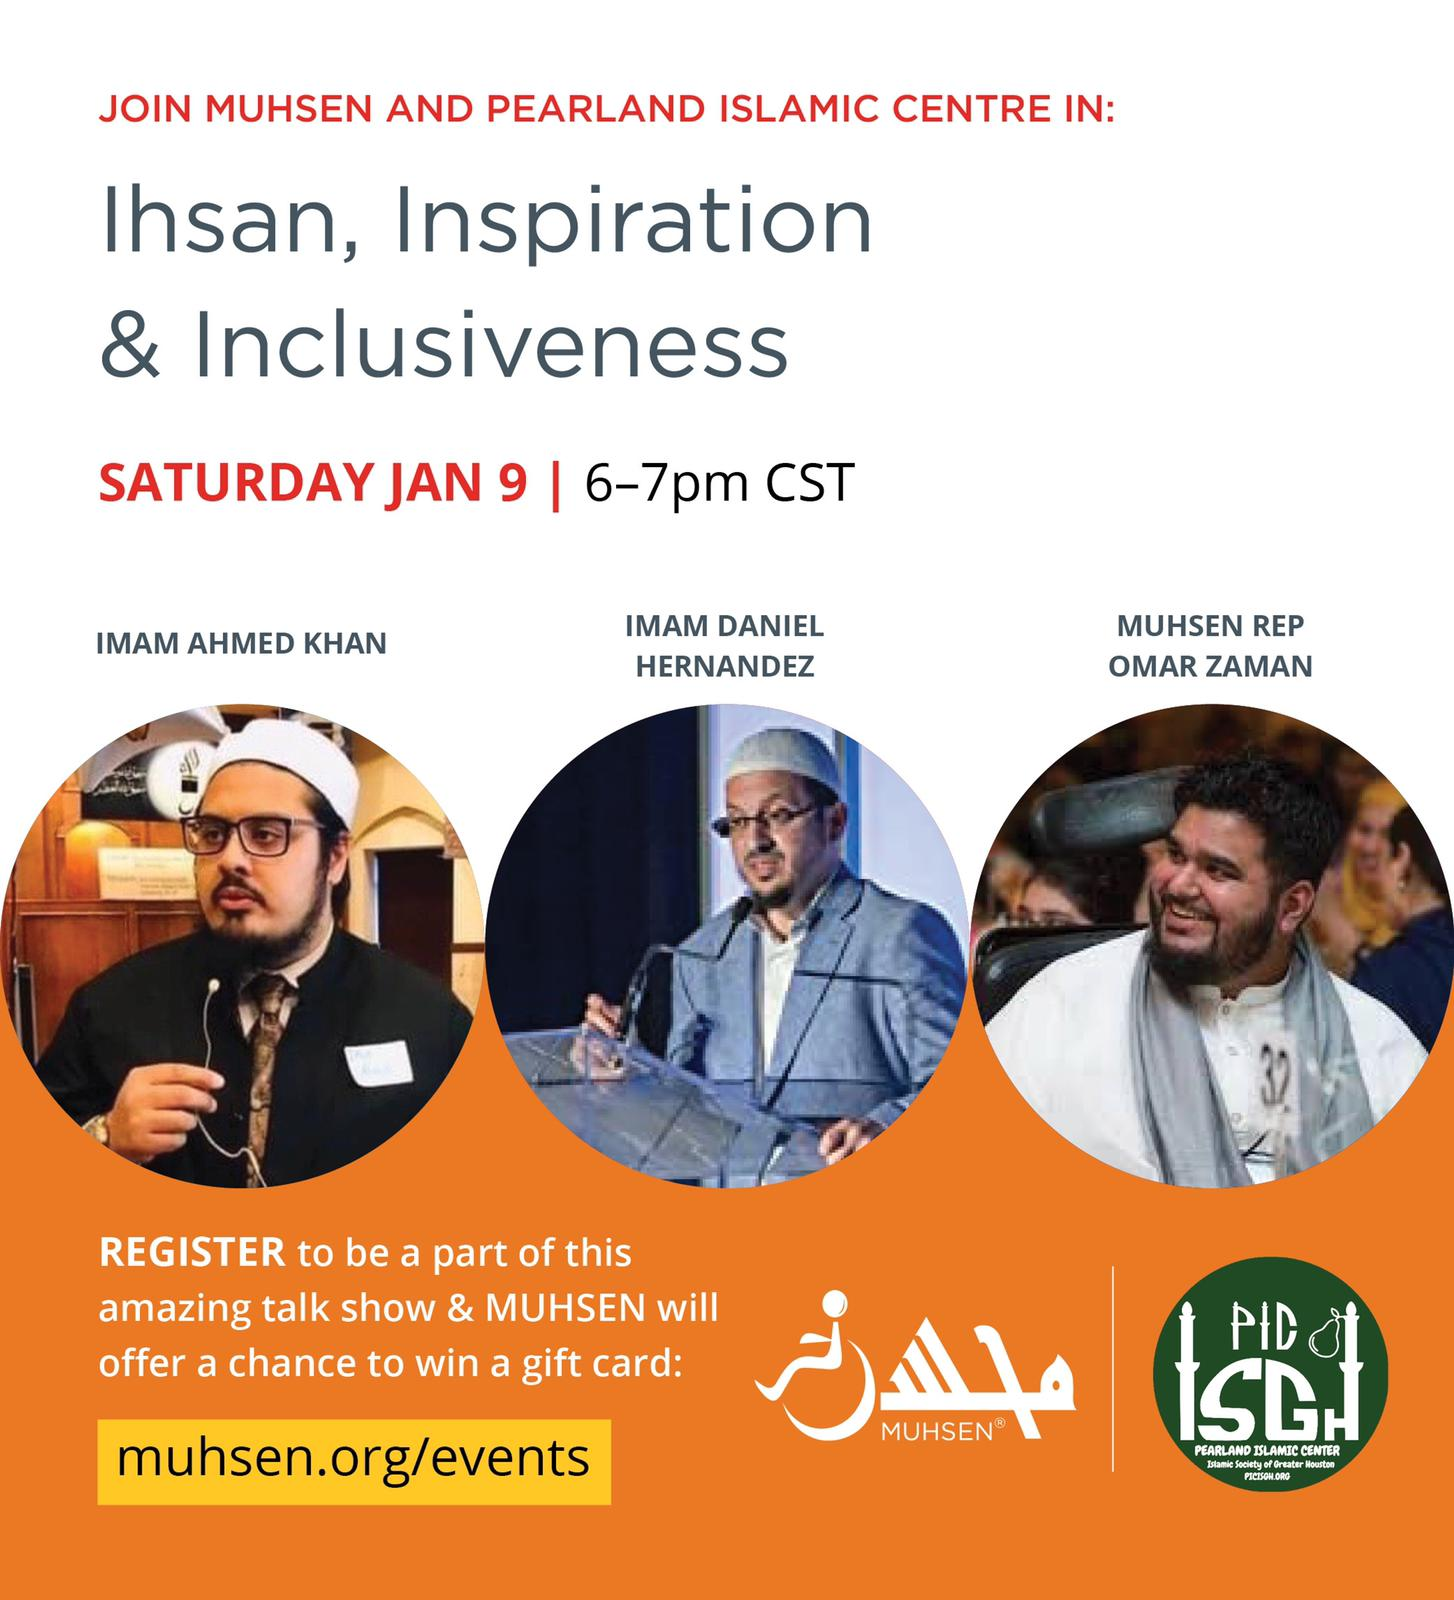 At the top is text that reads Join MUHSEN and Pearland Islamic Centre in Ihsan, Inspiration and Inclusiveness Sunday Jan 9 6 to 7 pm CST. Beneath to the left is a picture of Imam Ahmed Khan. To the right is a picture of MUHSEN rep omar zaman. In the middle is a picture of Imam Daniel Hernandez. Below is an orange background with text that reads Register to be a part of this amazing talk show and muhsen will offer a chance to win a gift card. to the right of the text is a white muhsen logo and a green pearland islamic center logo